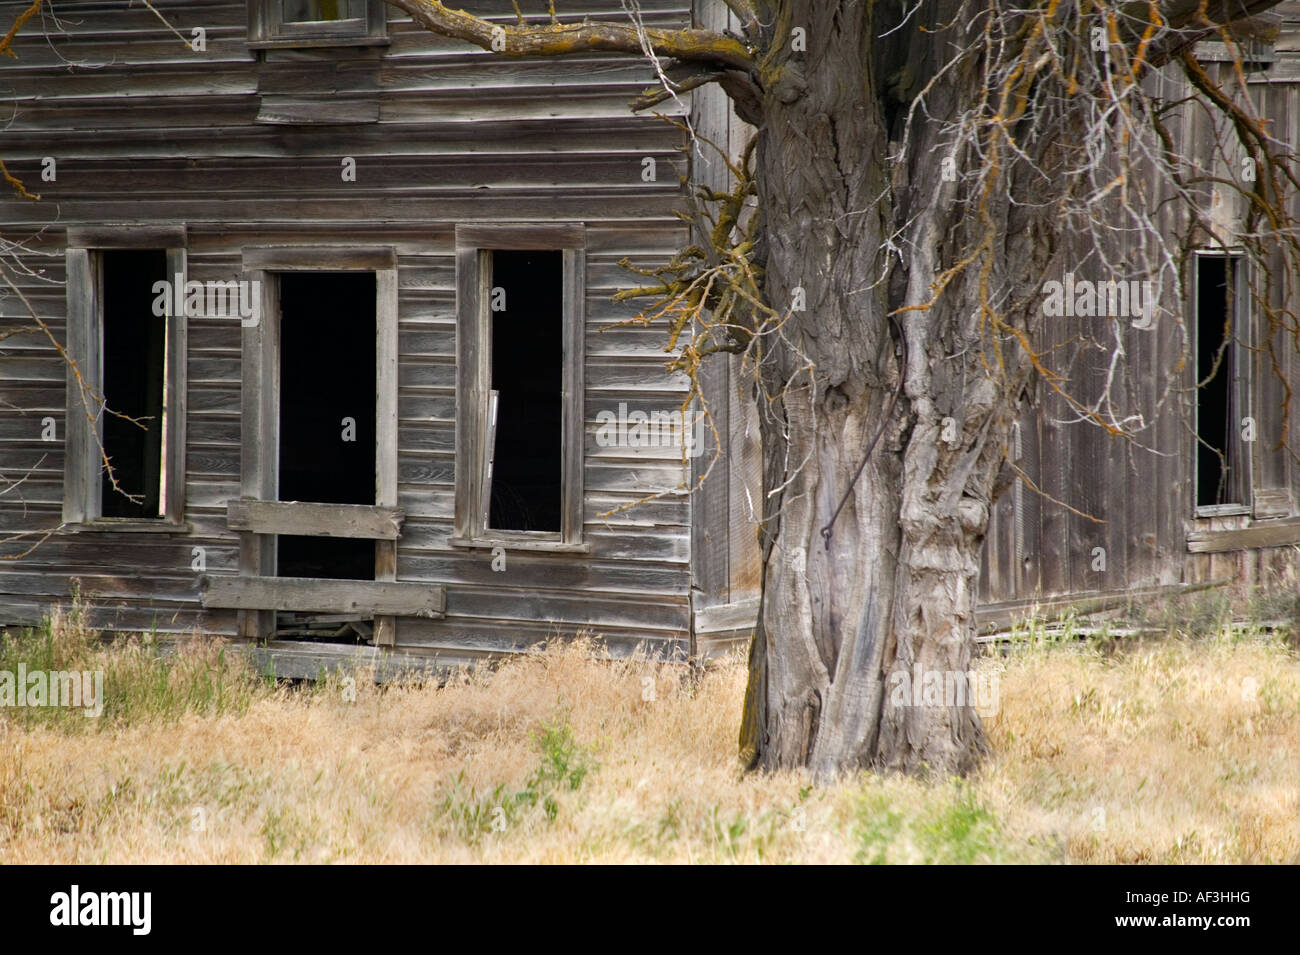 Old homestead dating into the early 1900's. - Stock Image